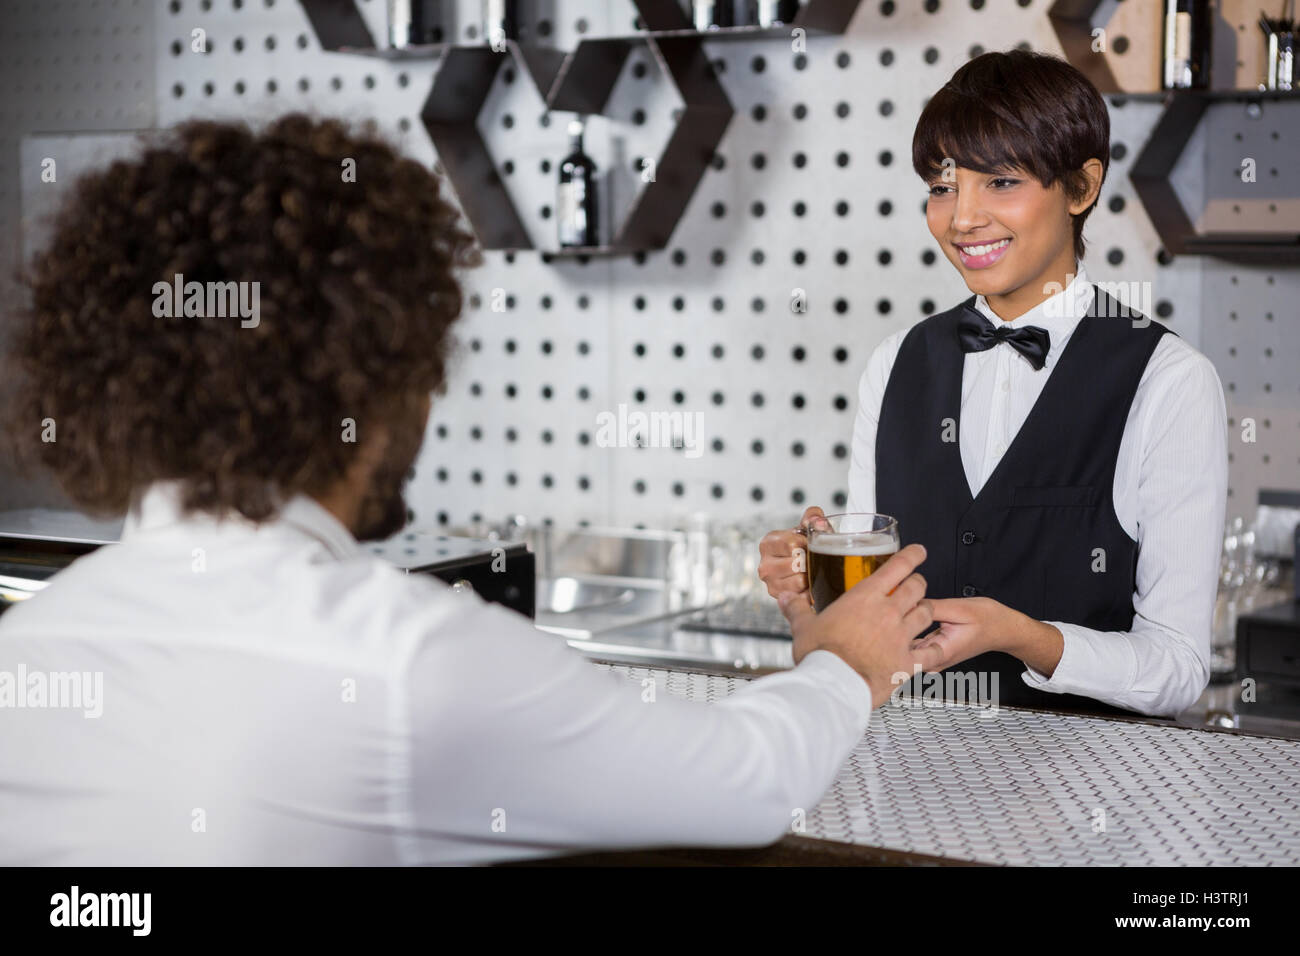 Barmaid serving drink to man - Stock Image